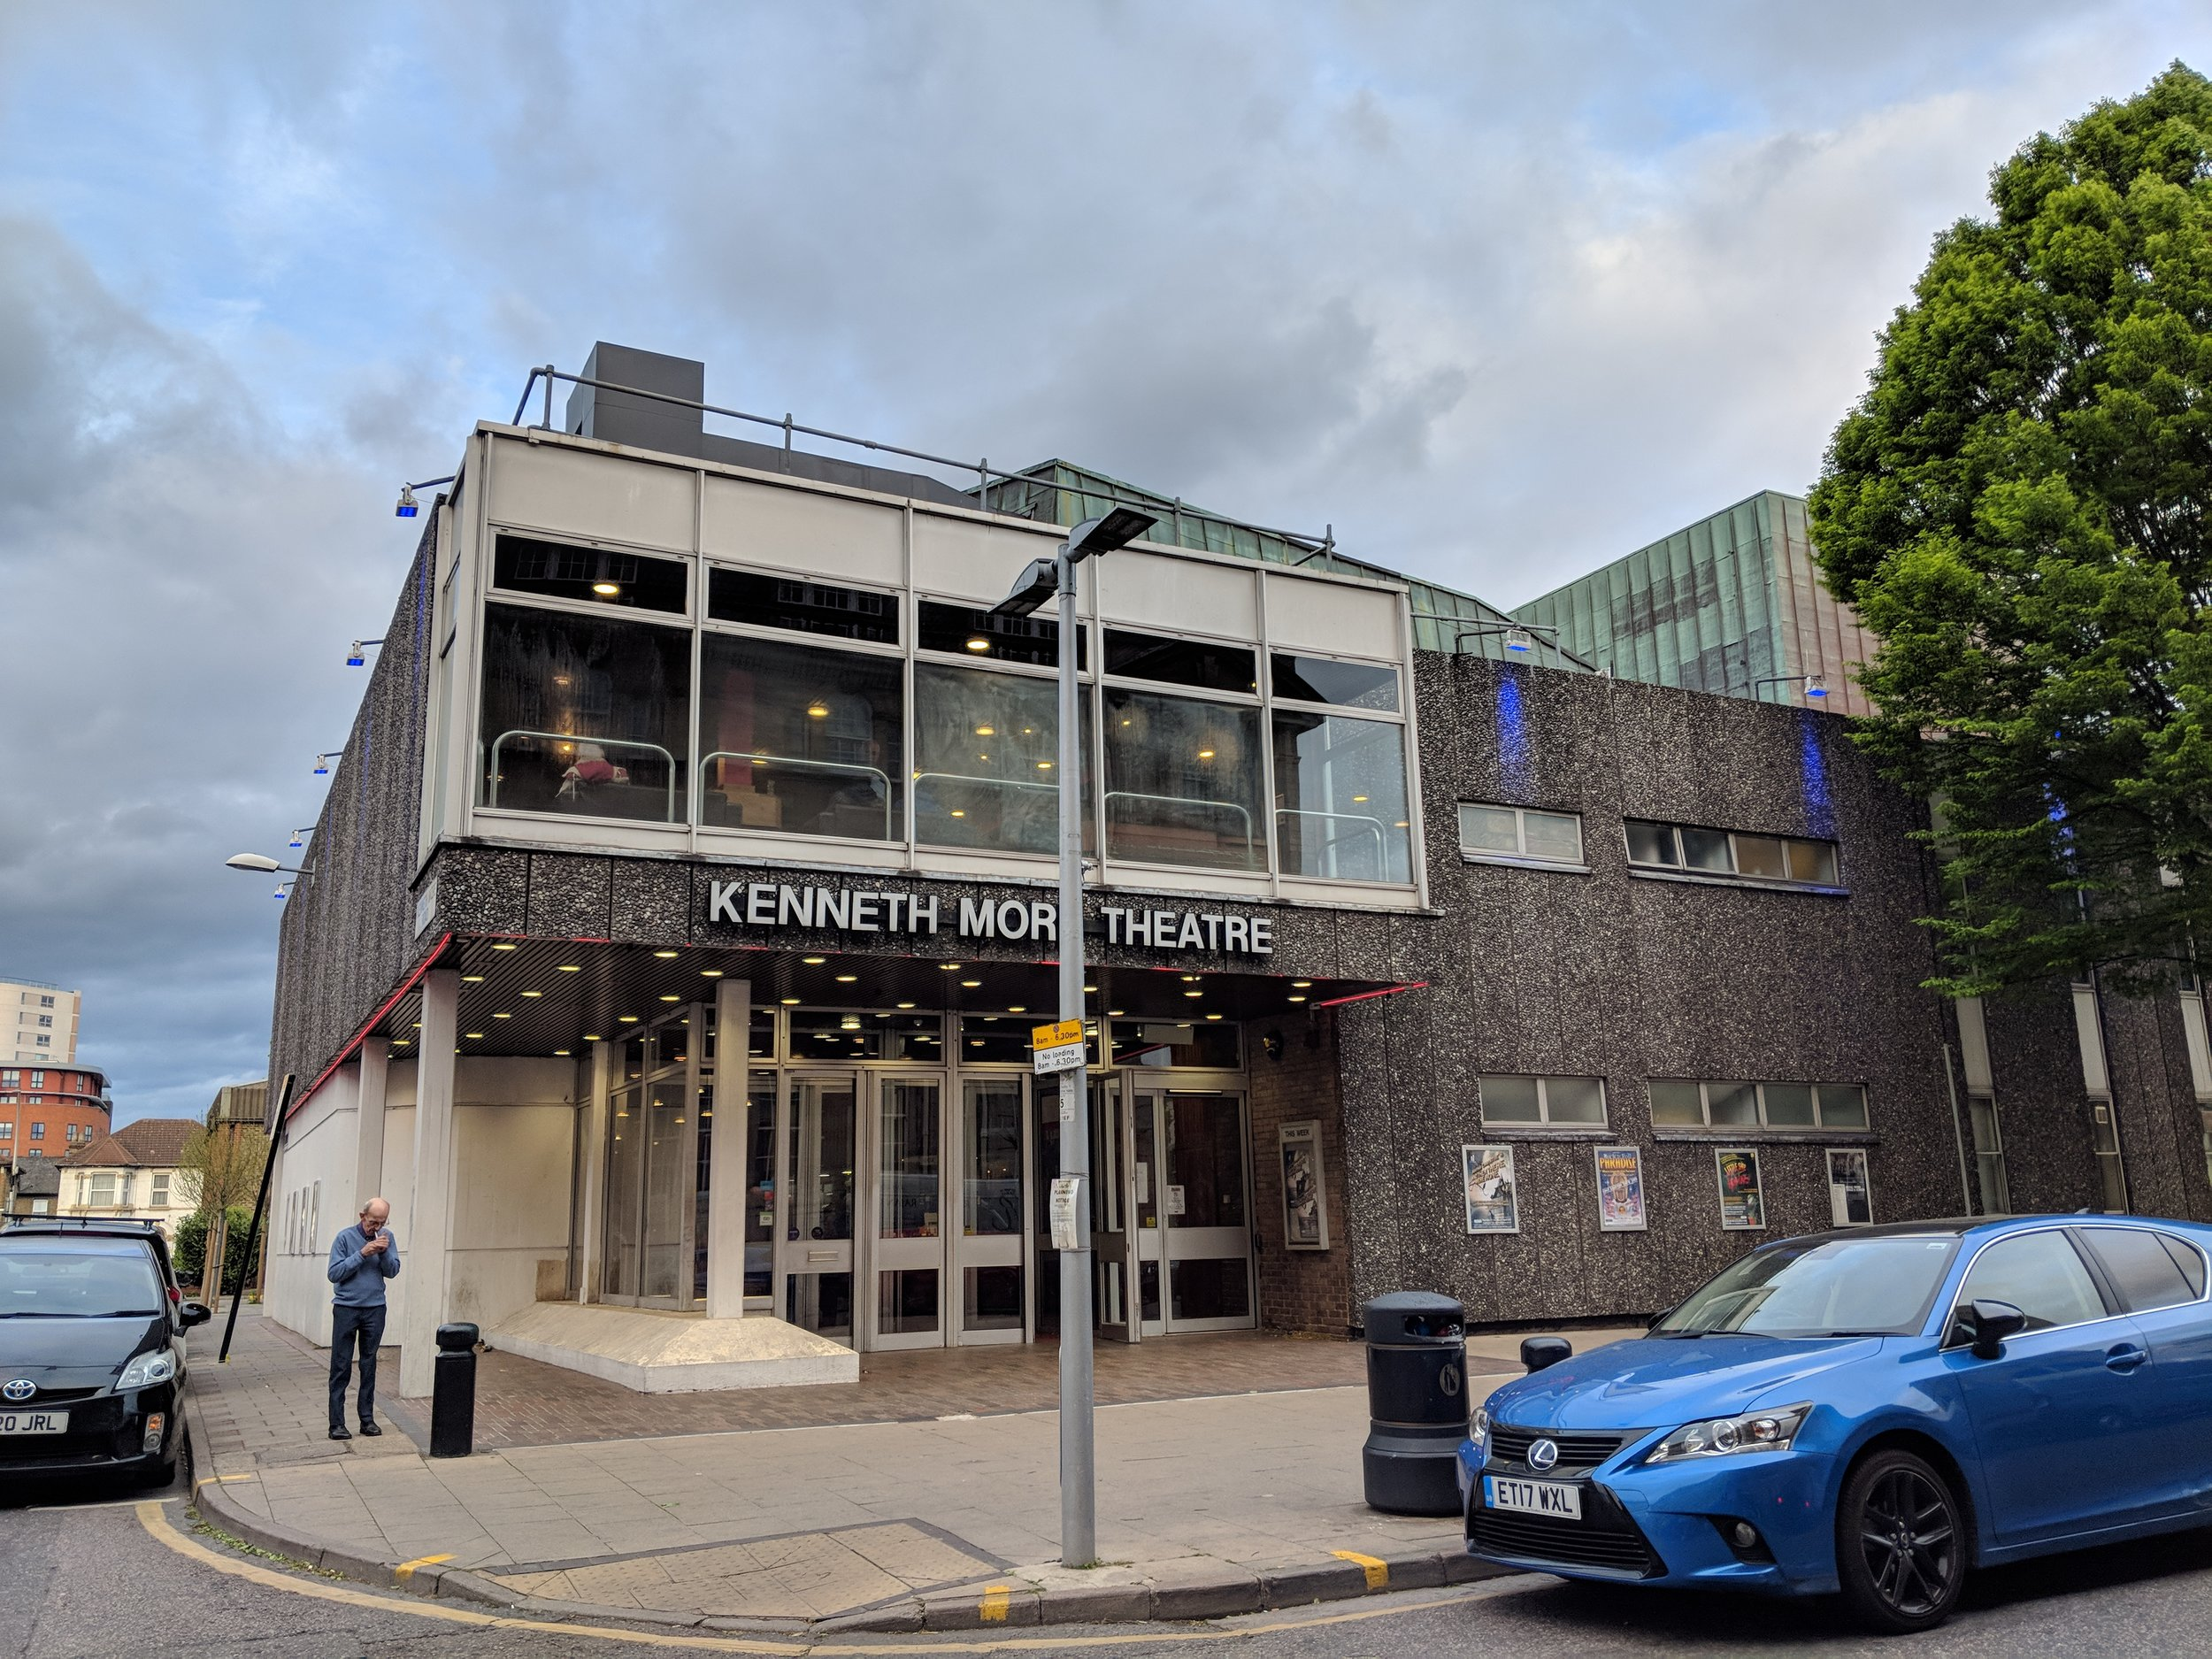 Kenneth More Theatre(Main Auditorium) - visited 27/04/2019